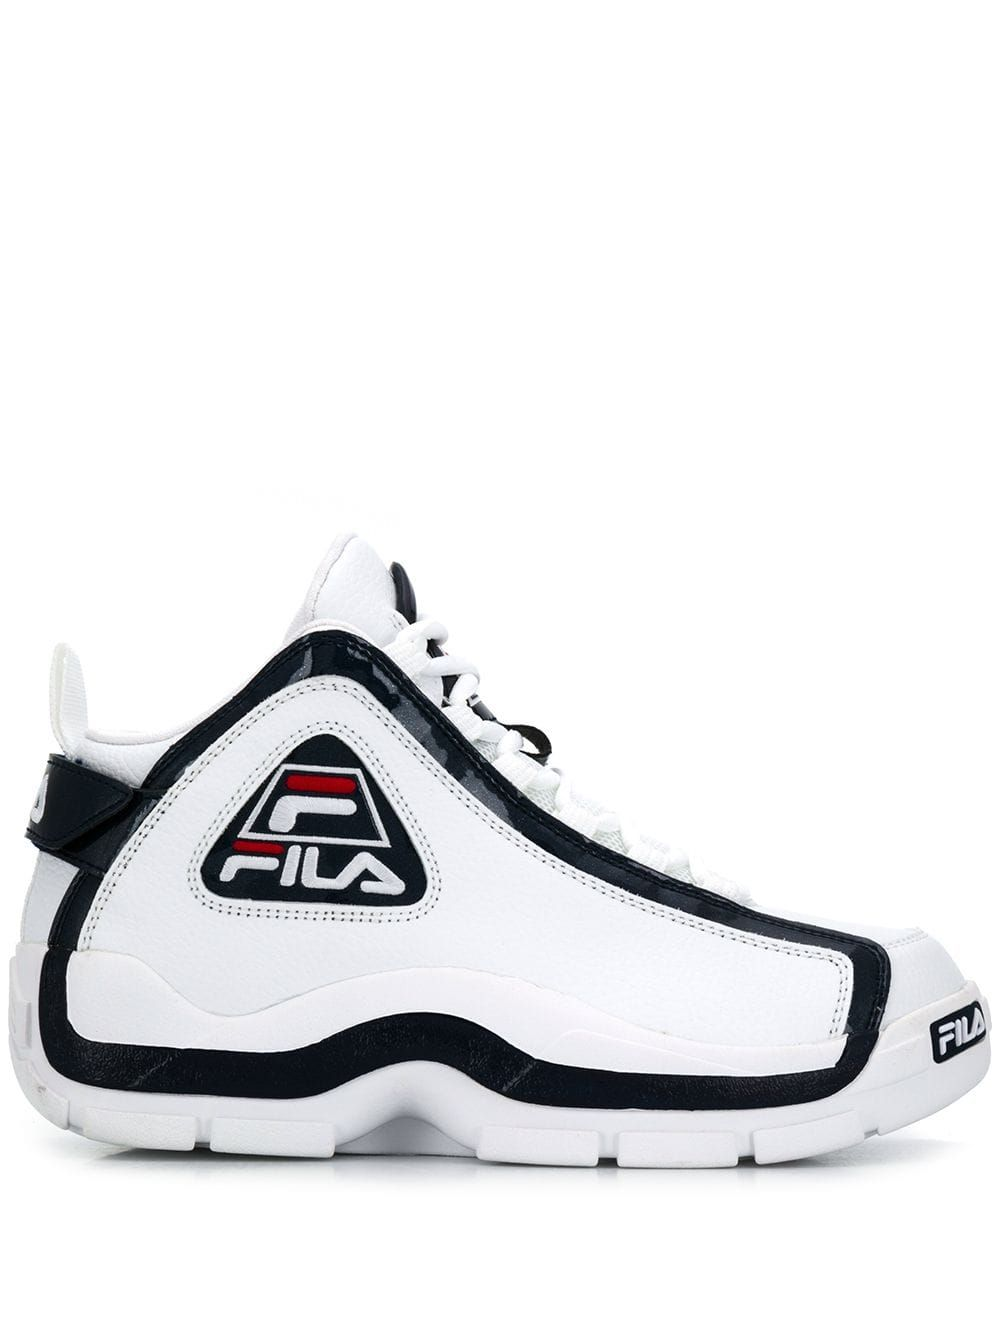 Fila White Leather Hi Top Sneakers